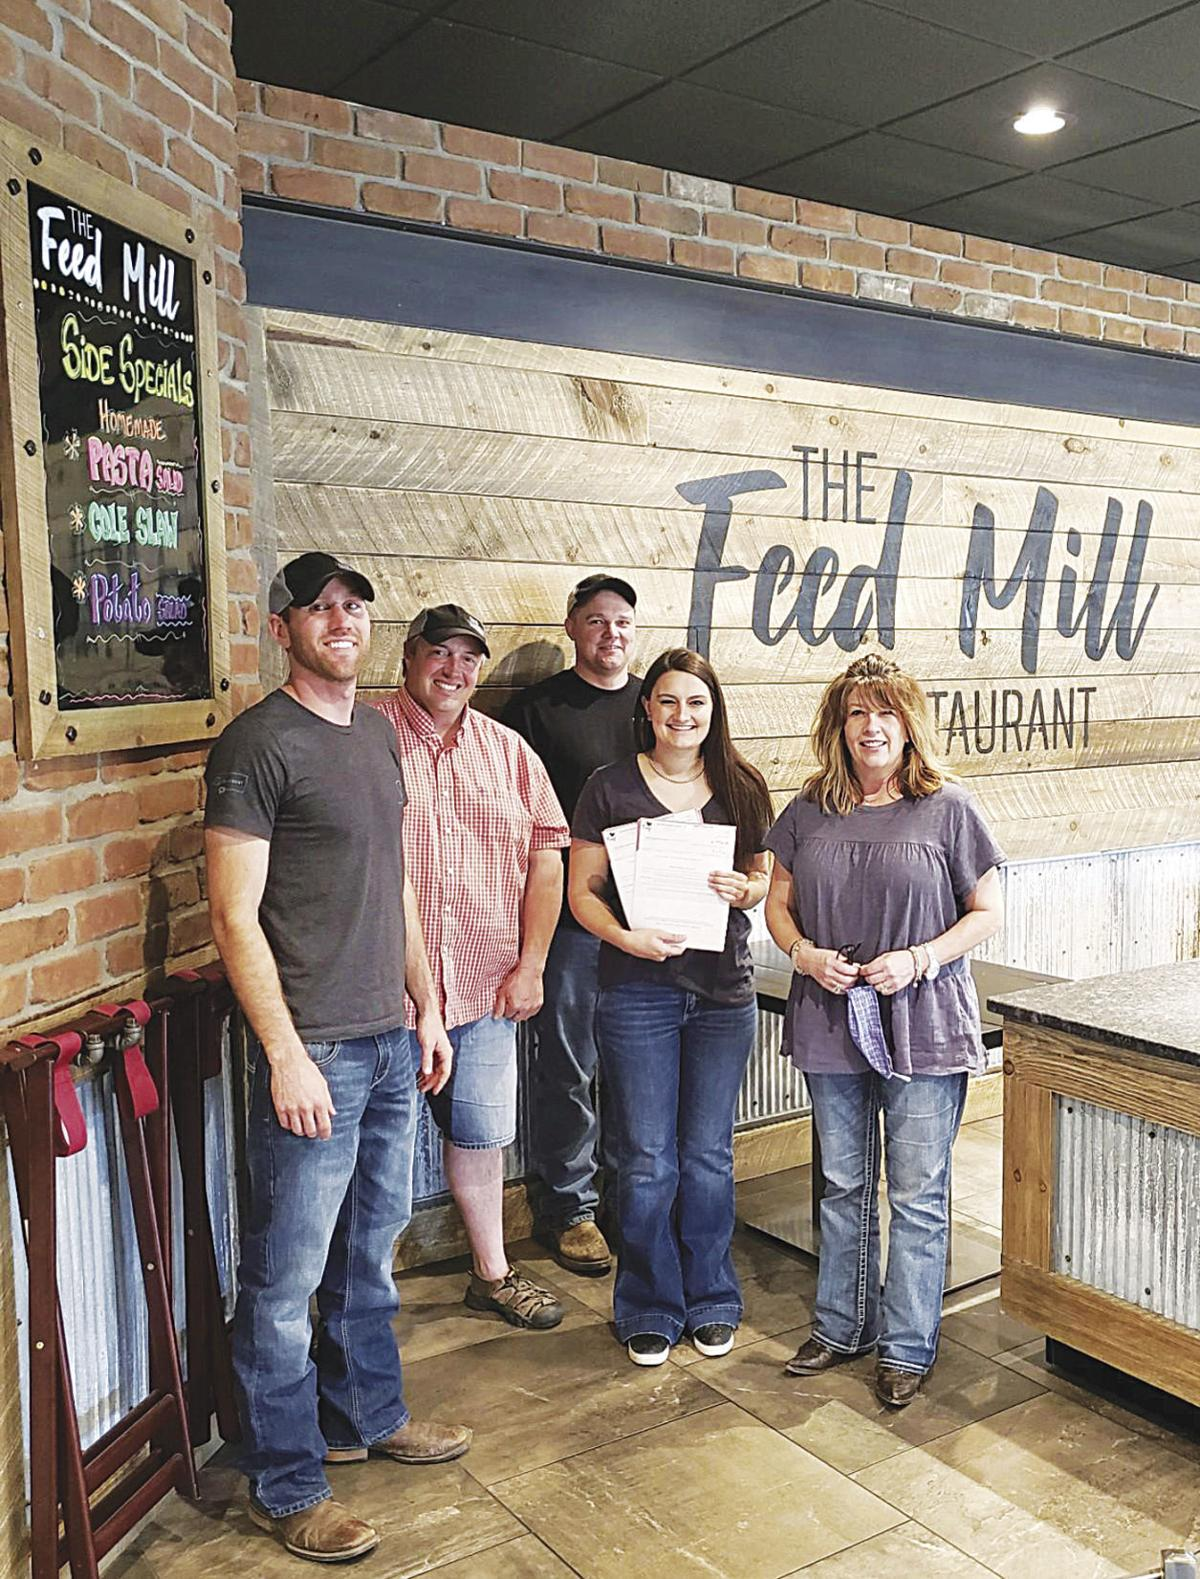 Waspys and The Feed Mill